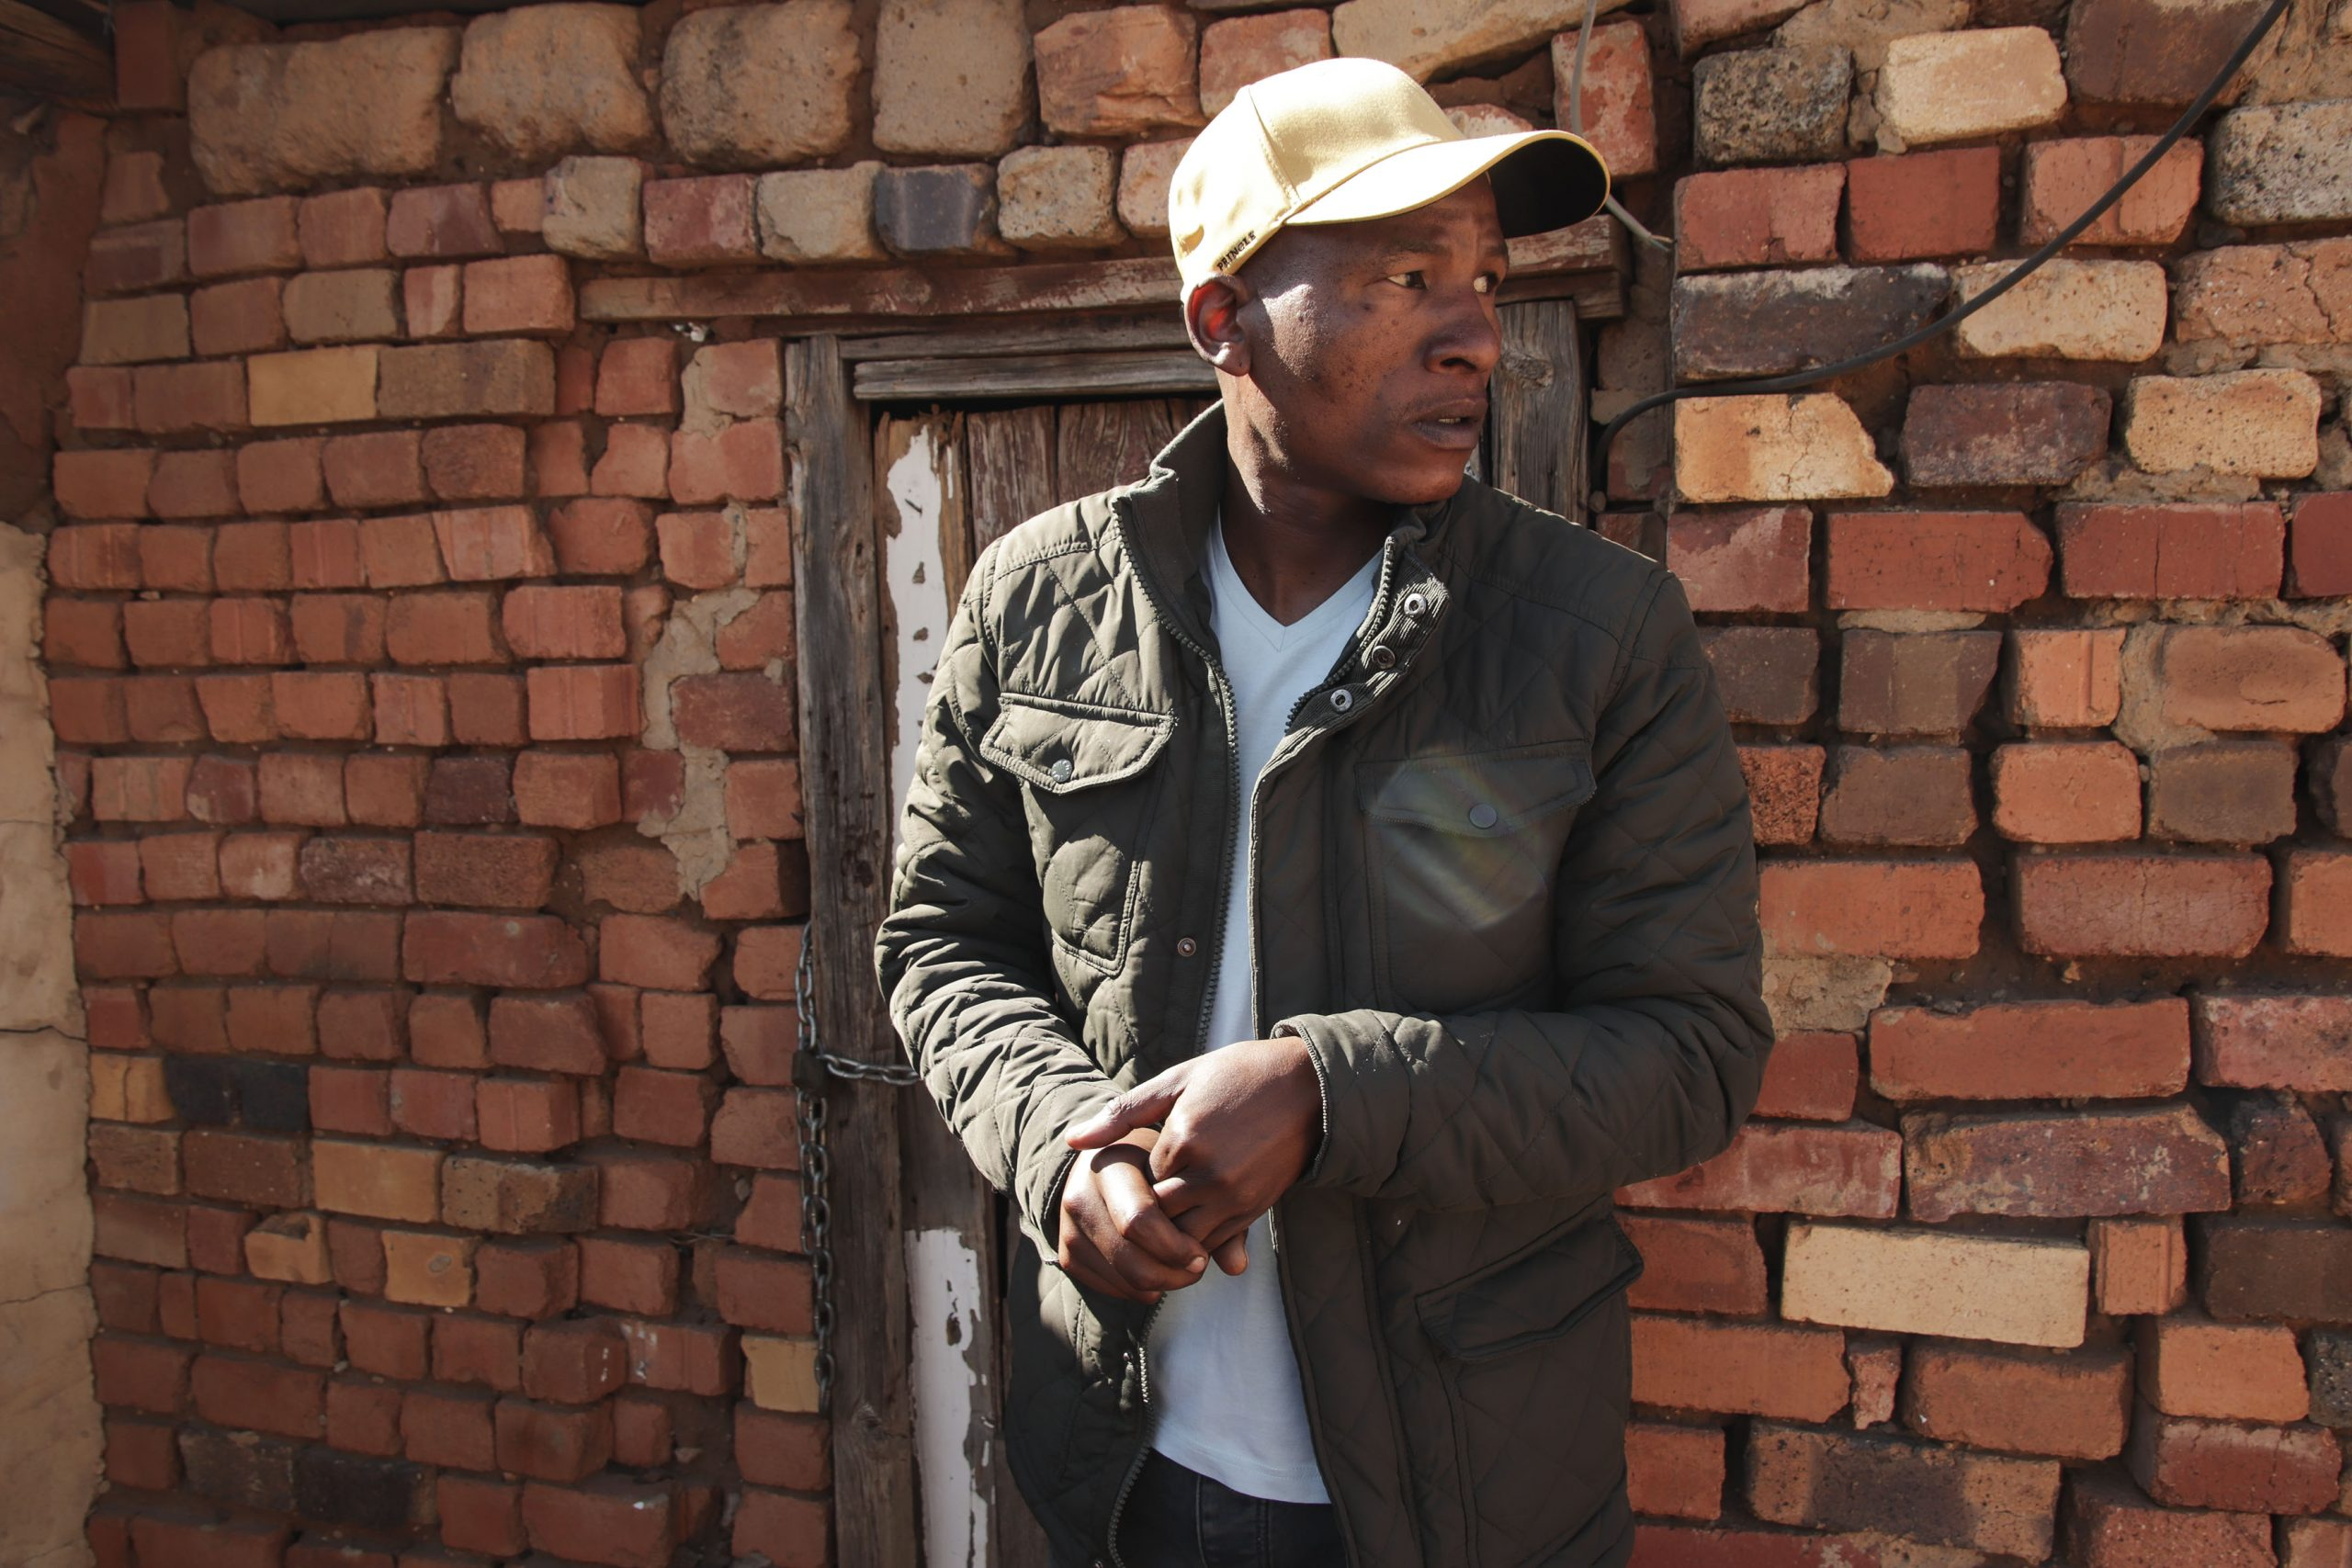 19 July 2020: Andrew Babeile stands in front of the house in the township of Huhudi, Vryburg, where he was born. (Photograph by Gaoretelelwe Molebalwa)